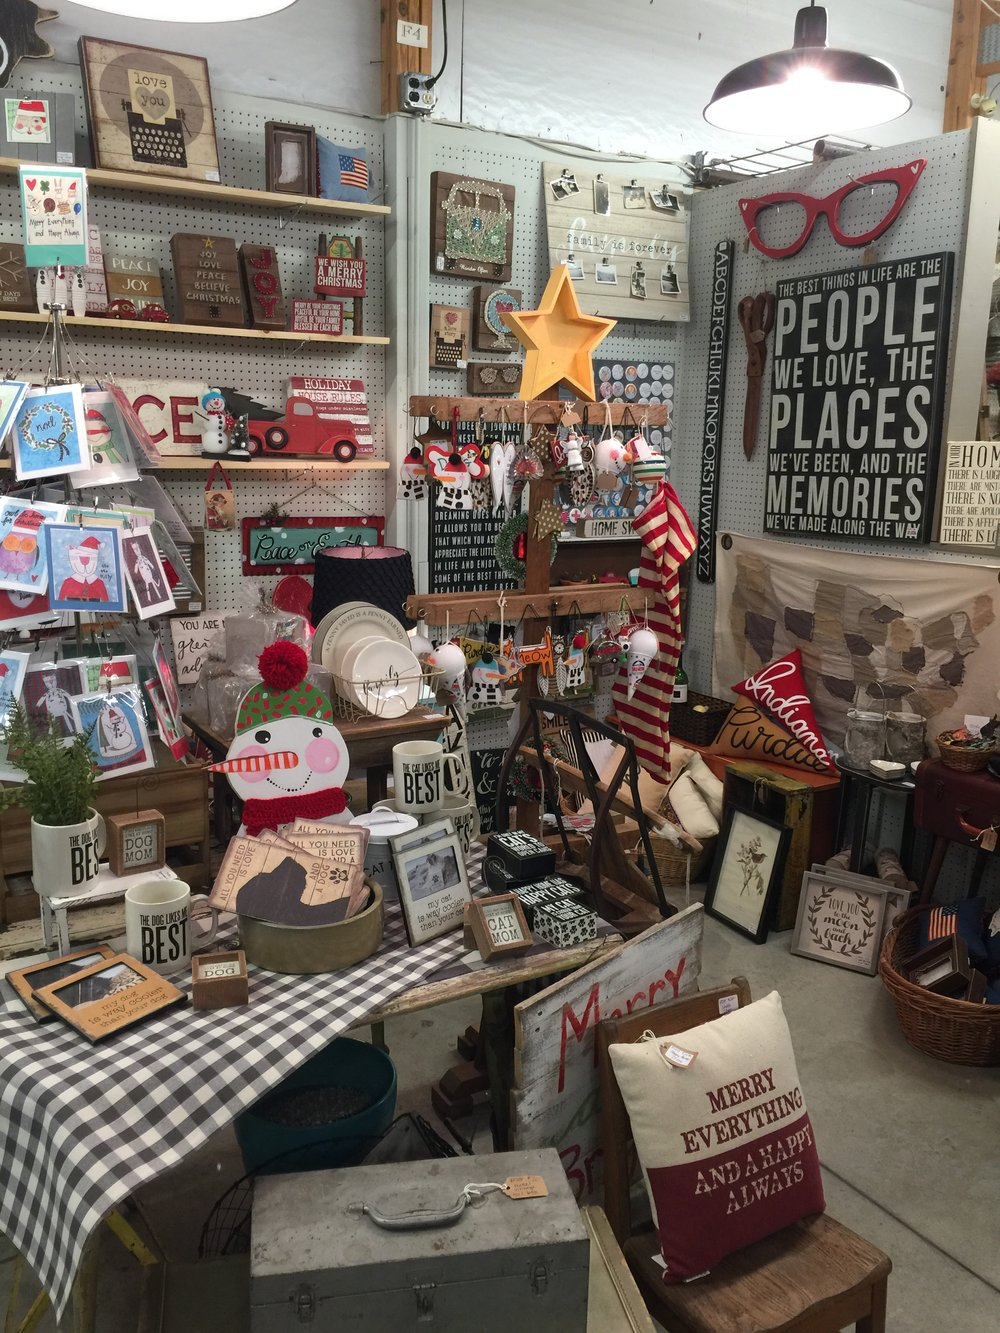 Gilley's Antique & Decorators Mall - 5789 E. US Hwy 40Plainfield, IN 46168Open 10-5 daily